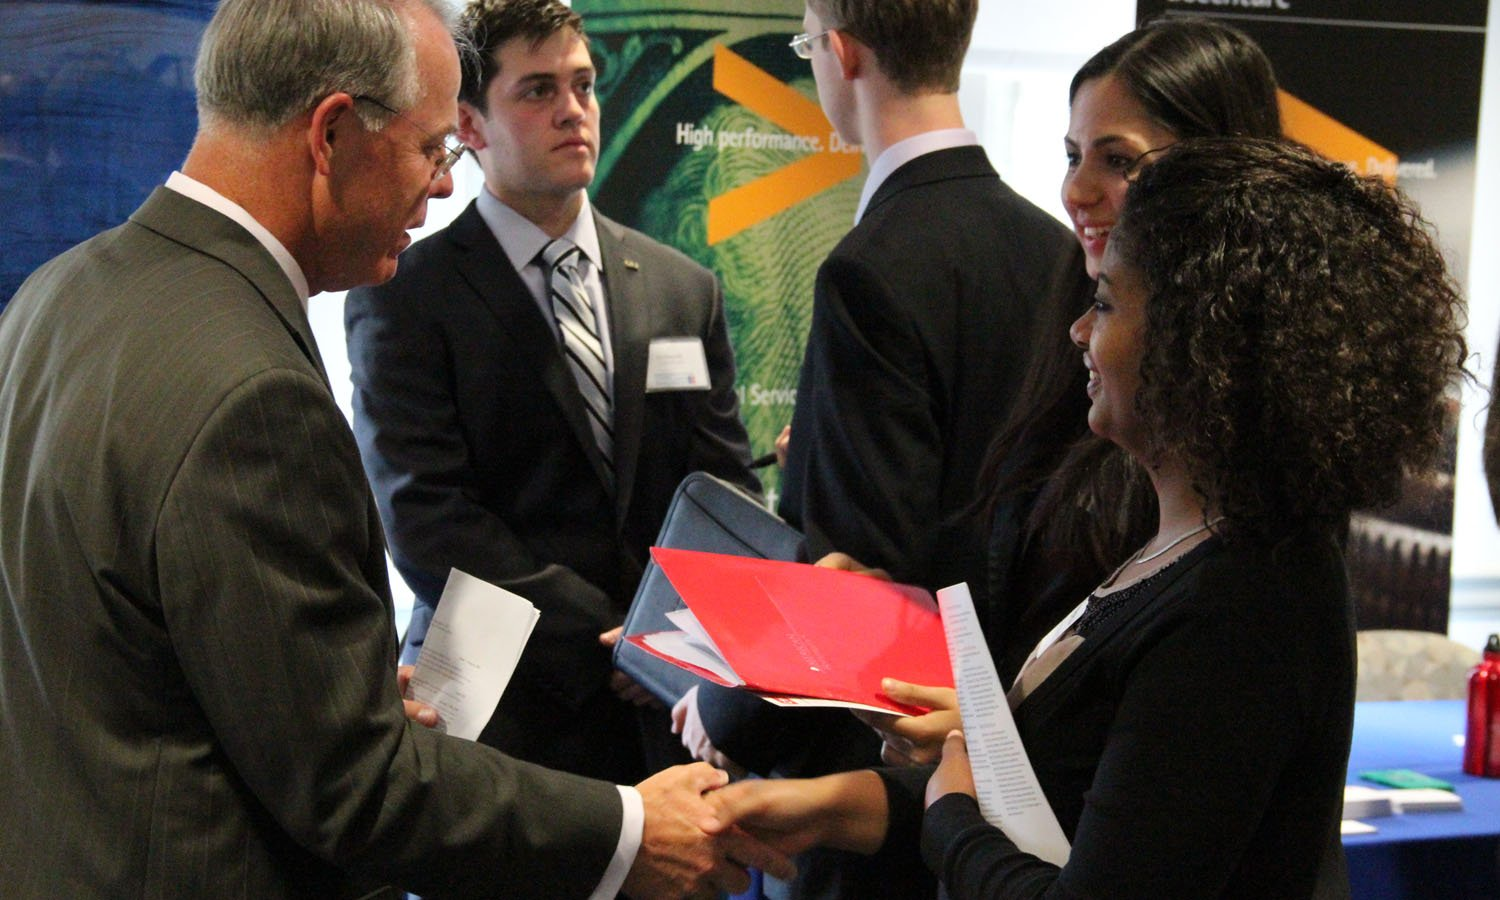 Student shaking hands with a recruiter at a job fair